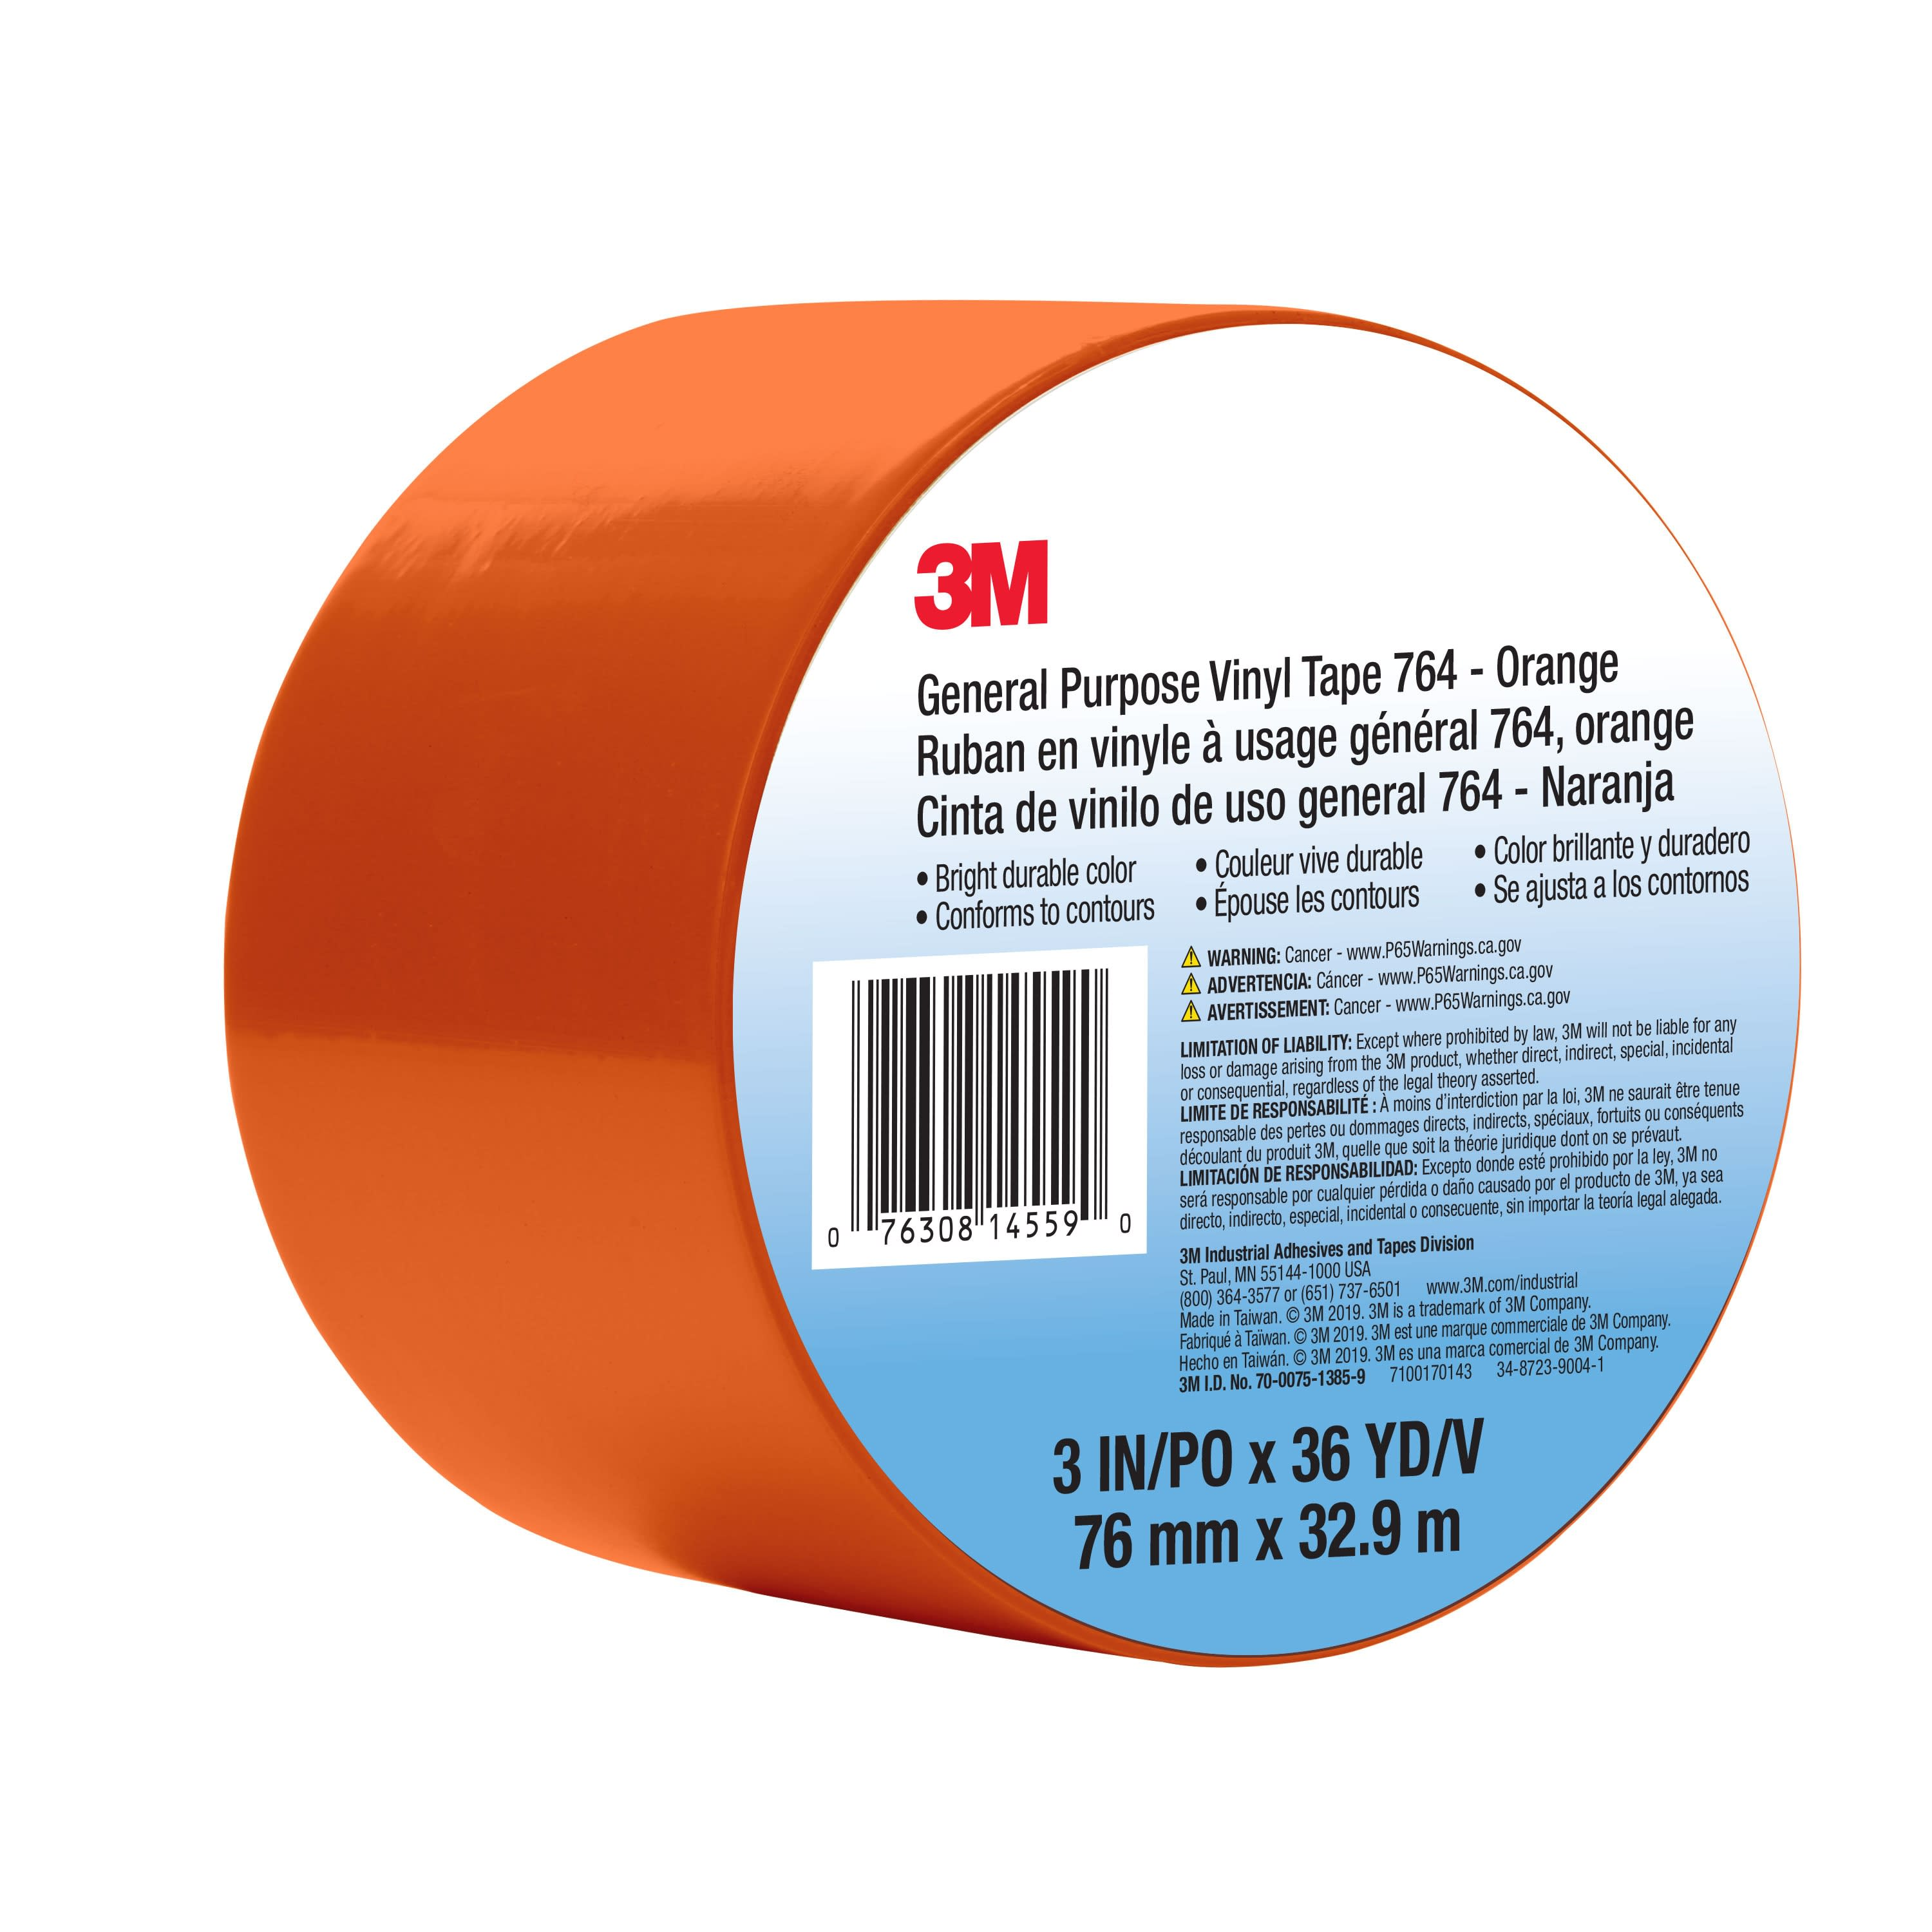 3M™ General Purpose Vinyl Tape 764, Orange, 3 in x 36 yd, 5 mil, 12 Roll/Case, Individually Wrapped Conveniently Packaged